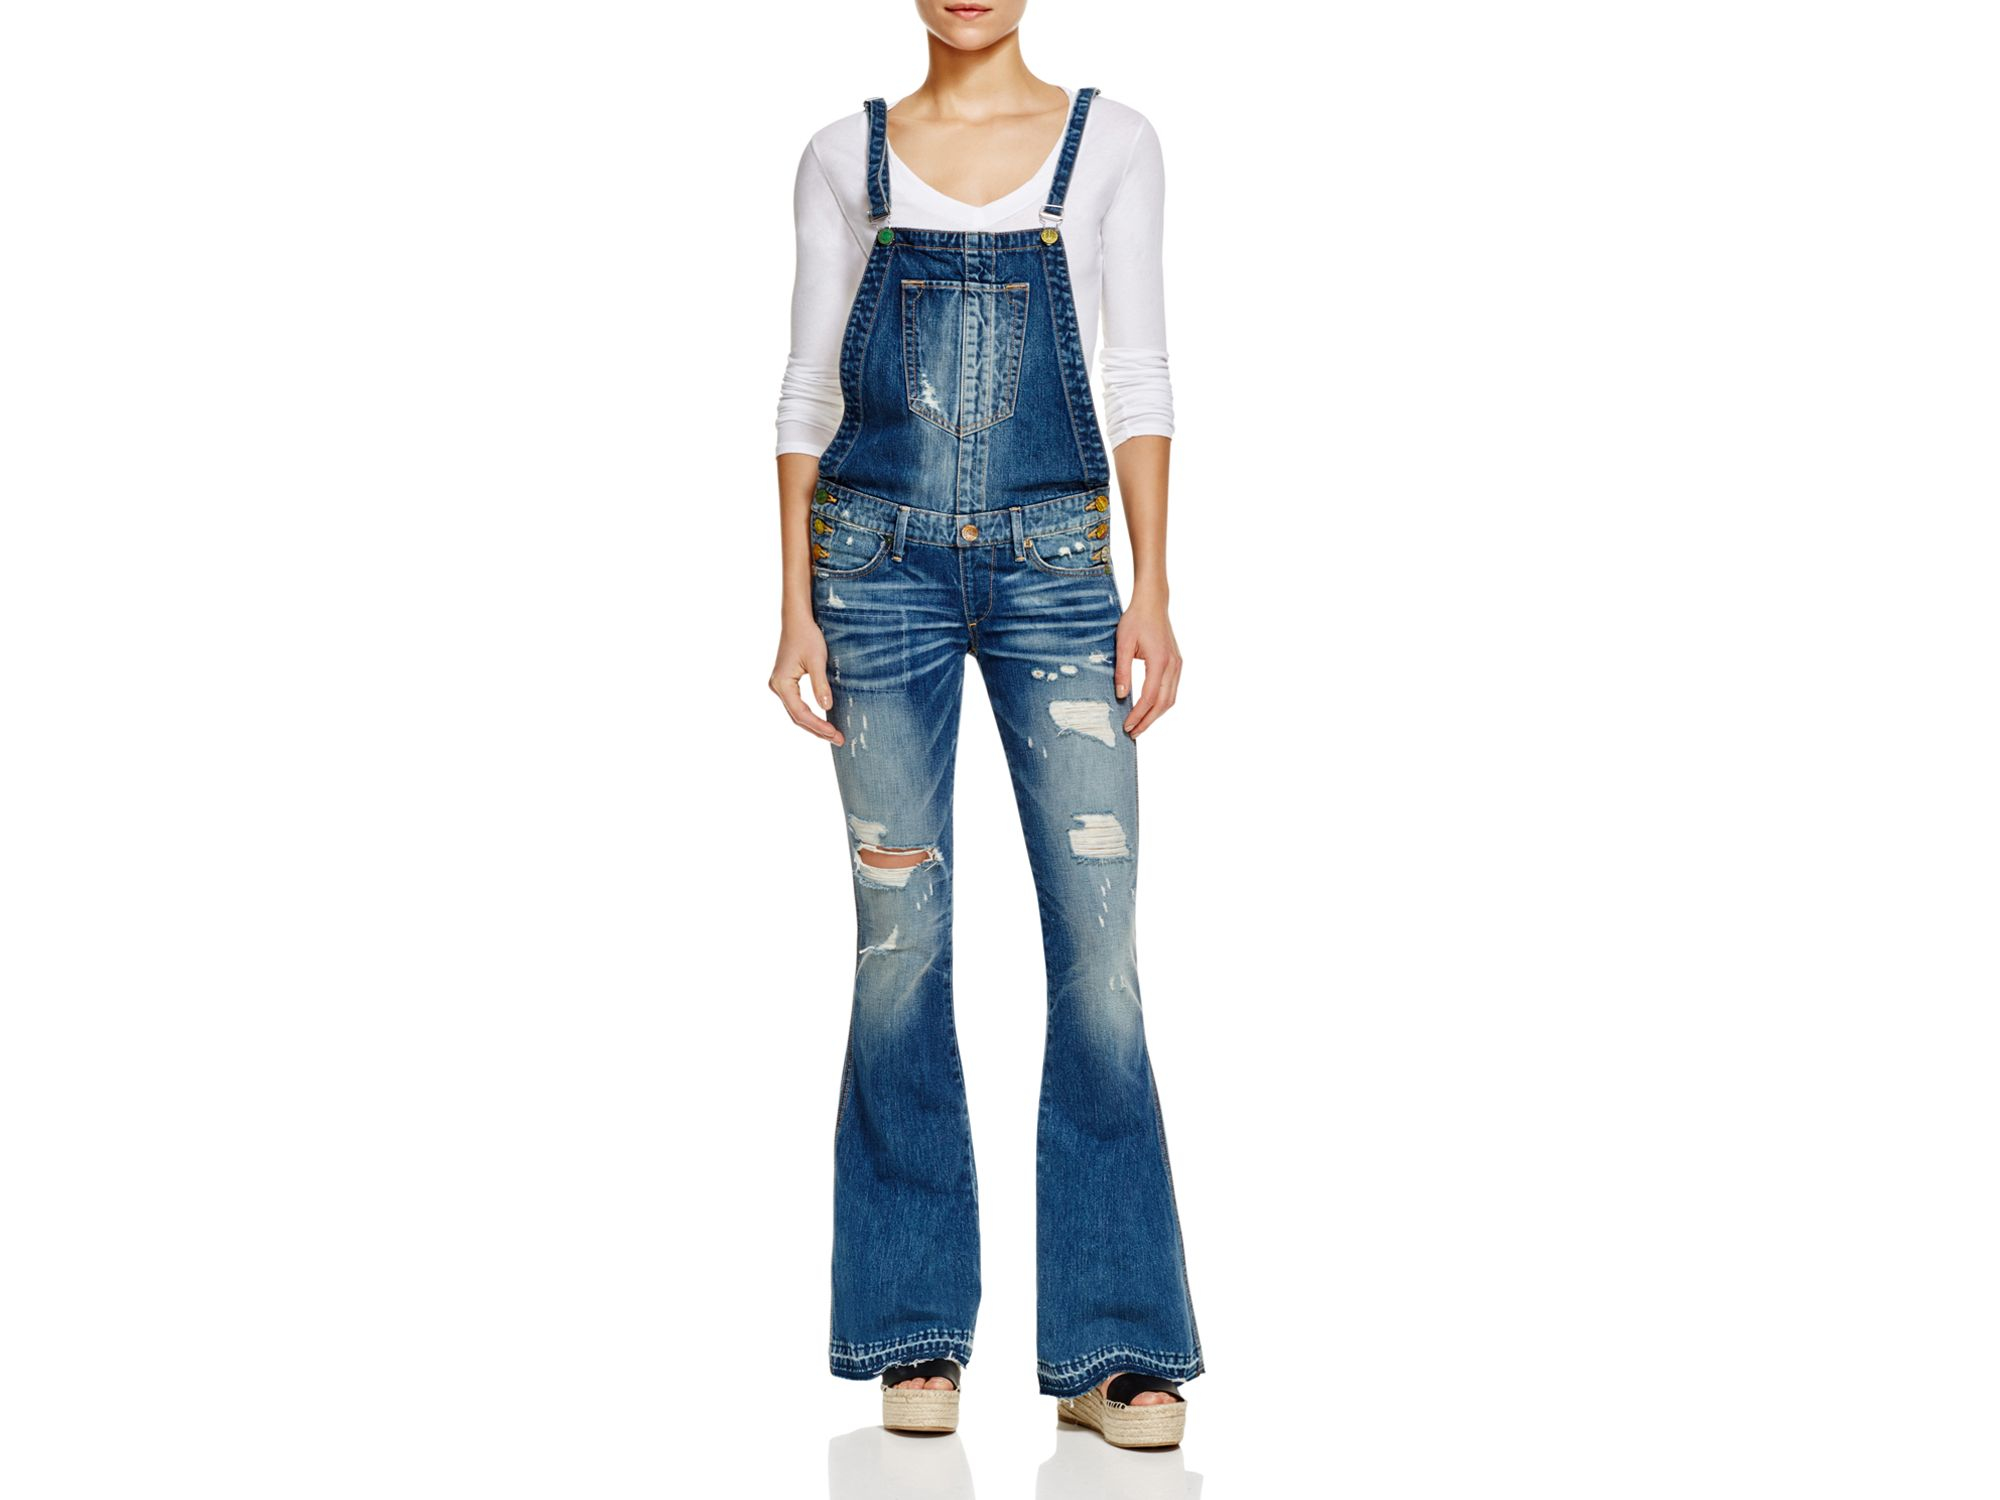 12c0a9cf5a83 Lyst - True Religion Karlie Flare Overalls In Vintage in Blue